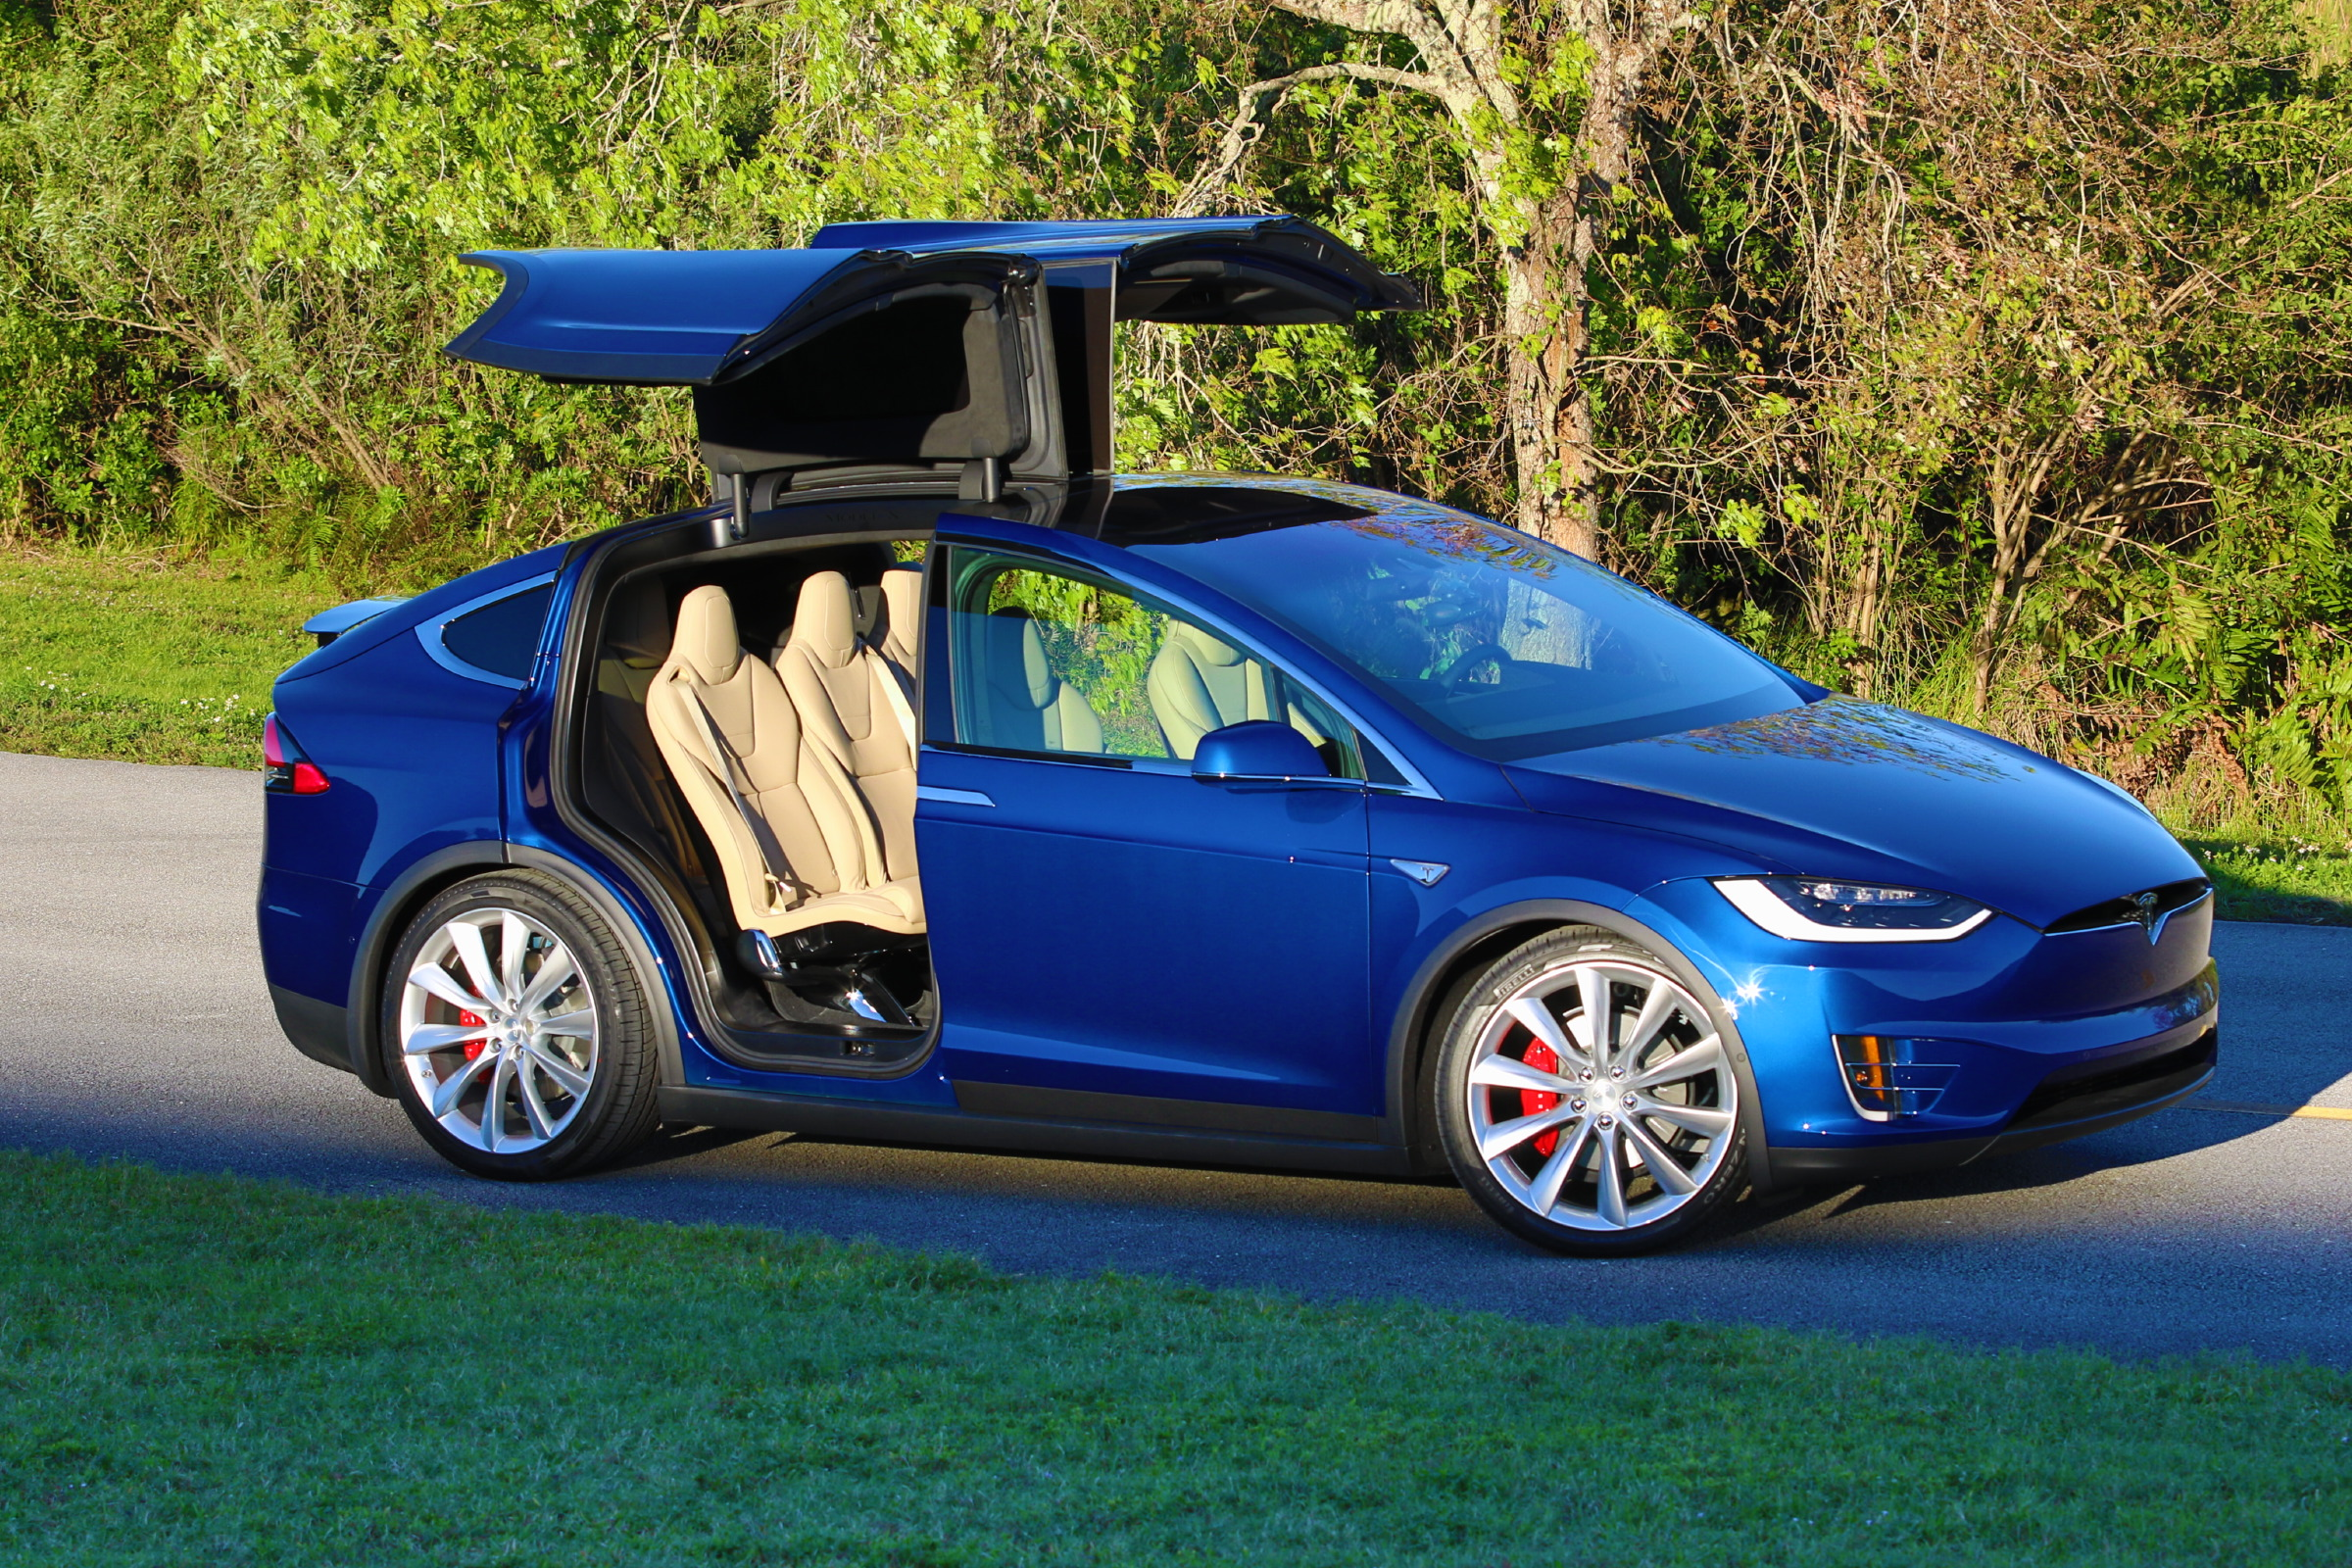 2016 Tesla Model X P90d Deep Blue Metallic Picture Gallery Dragtimes Com Drag Racing Fast